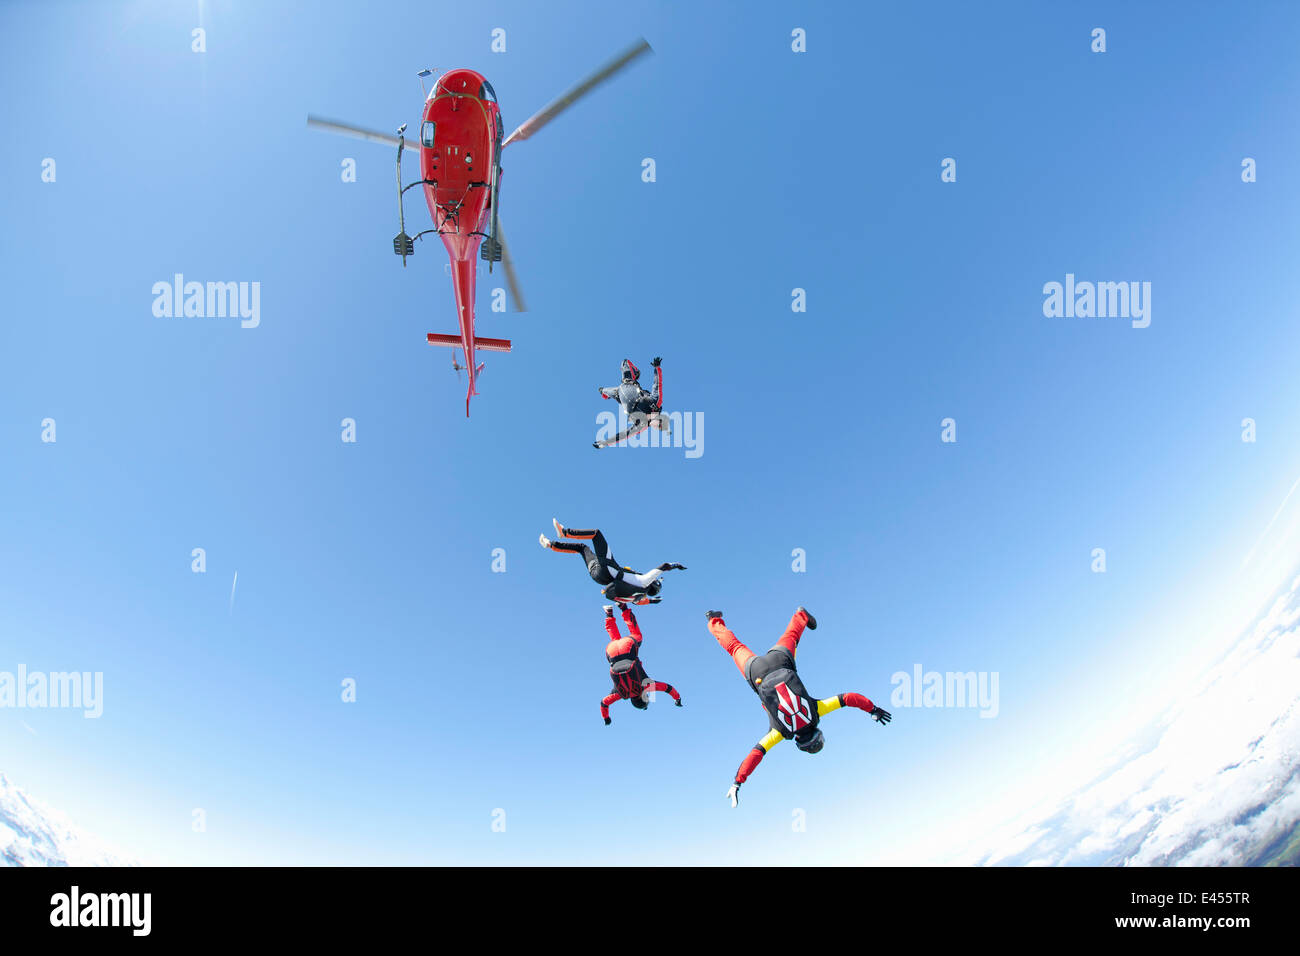 Skydiving team of four free falling from helicopter - Stock Image